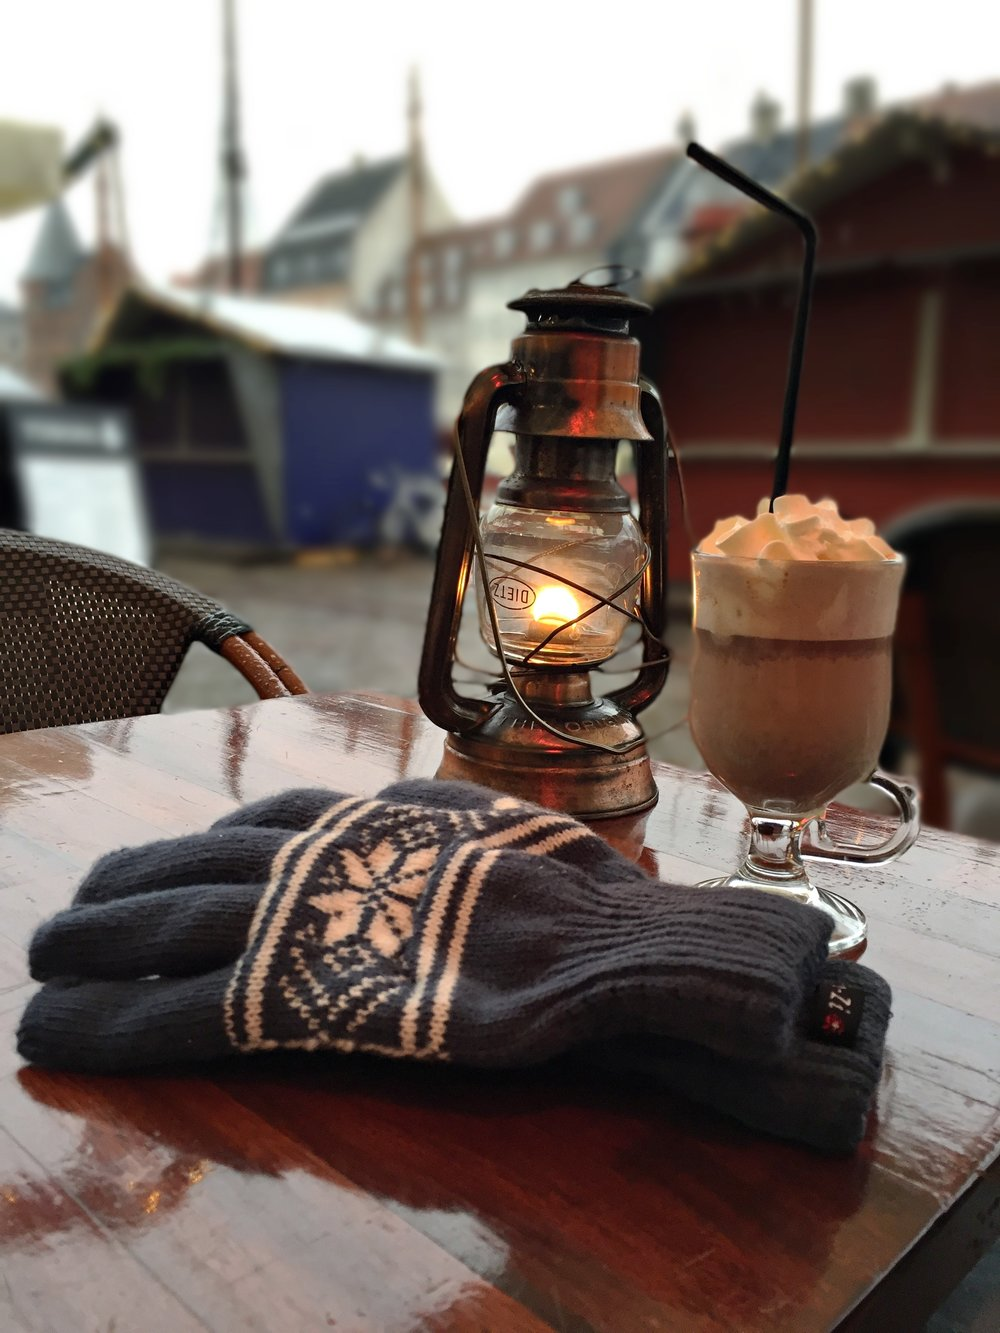 Outdoor Hygge at Nyhavn